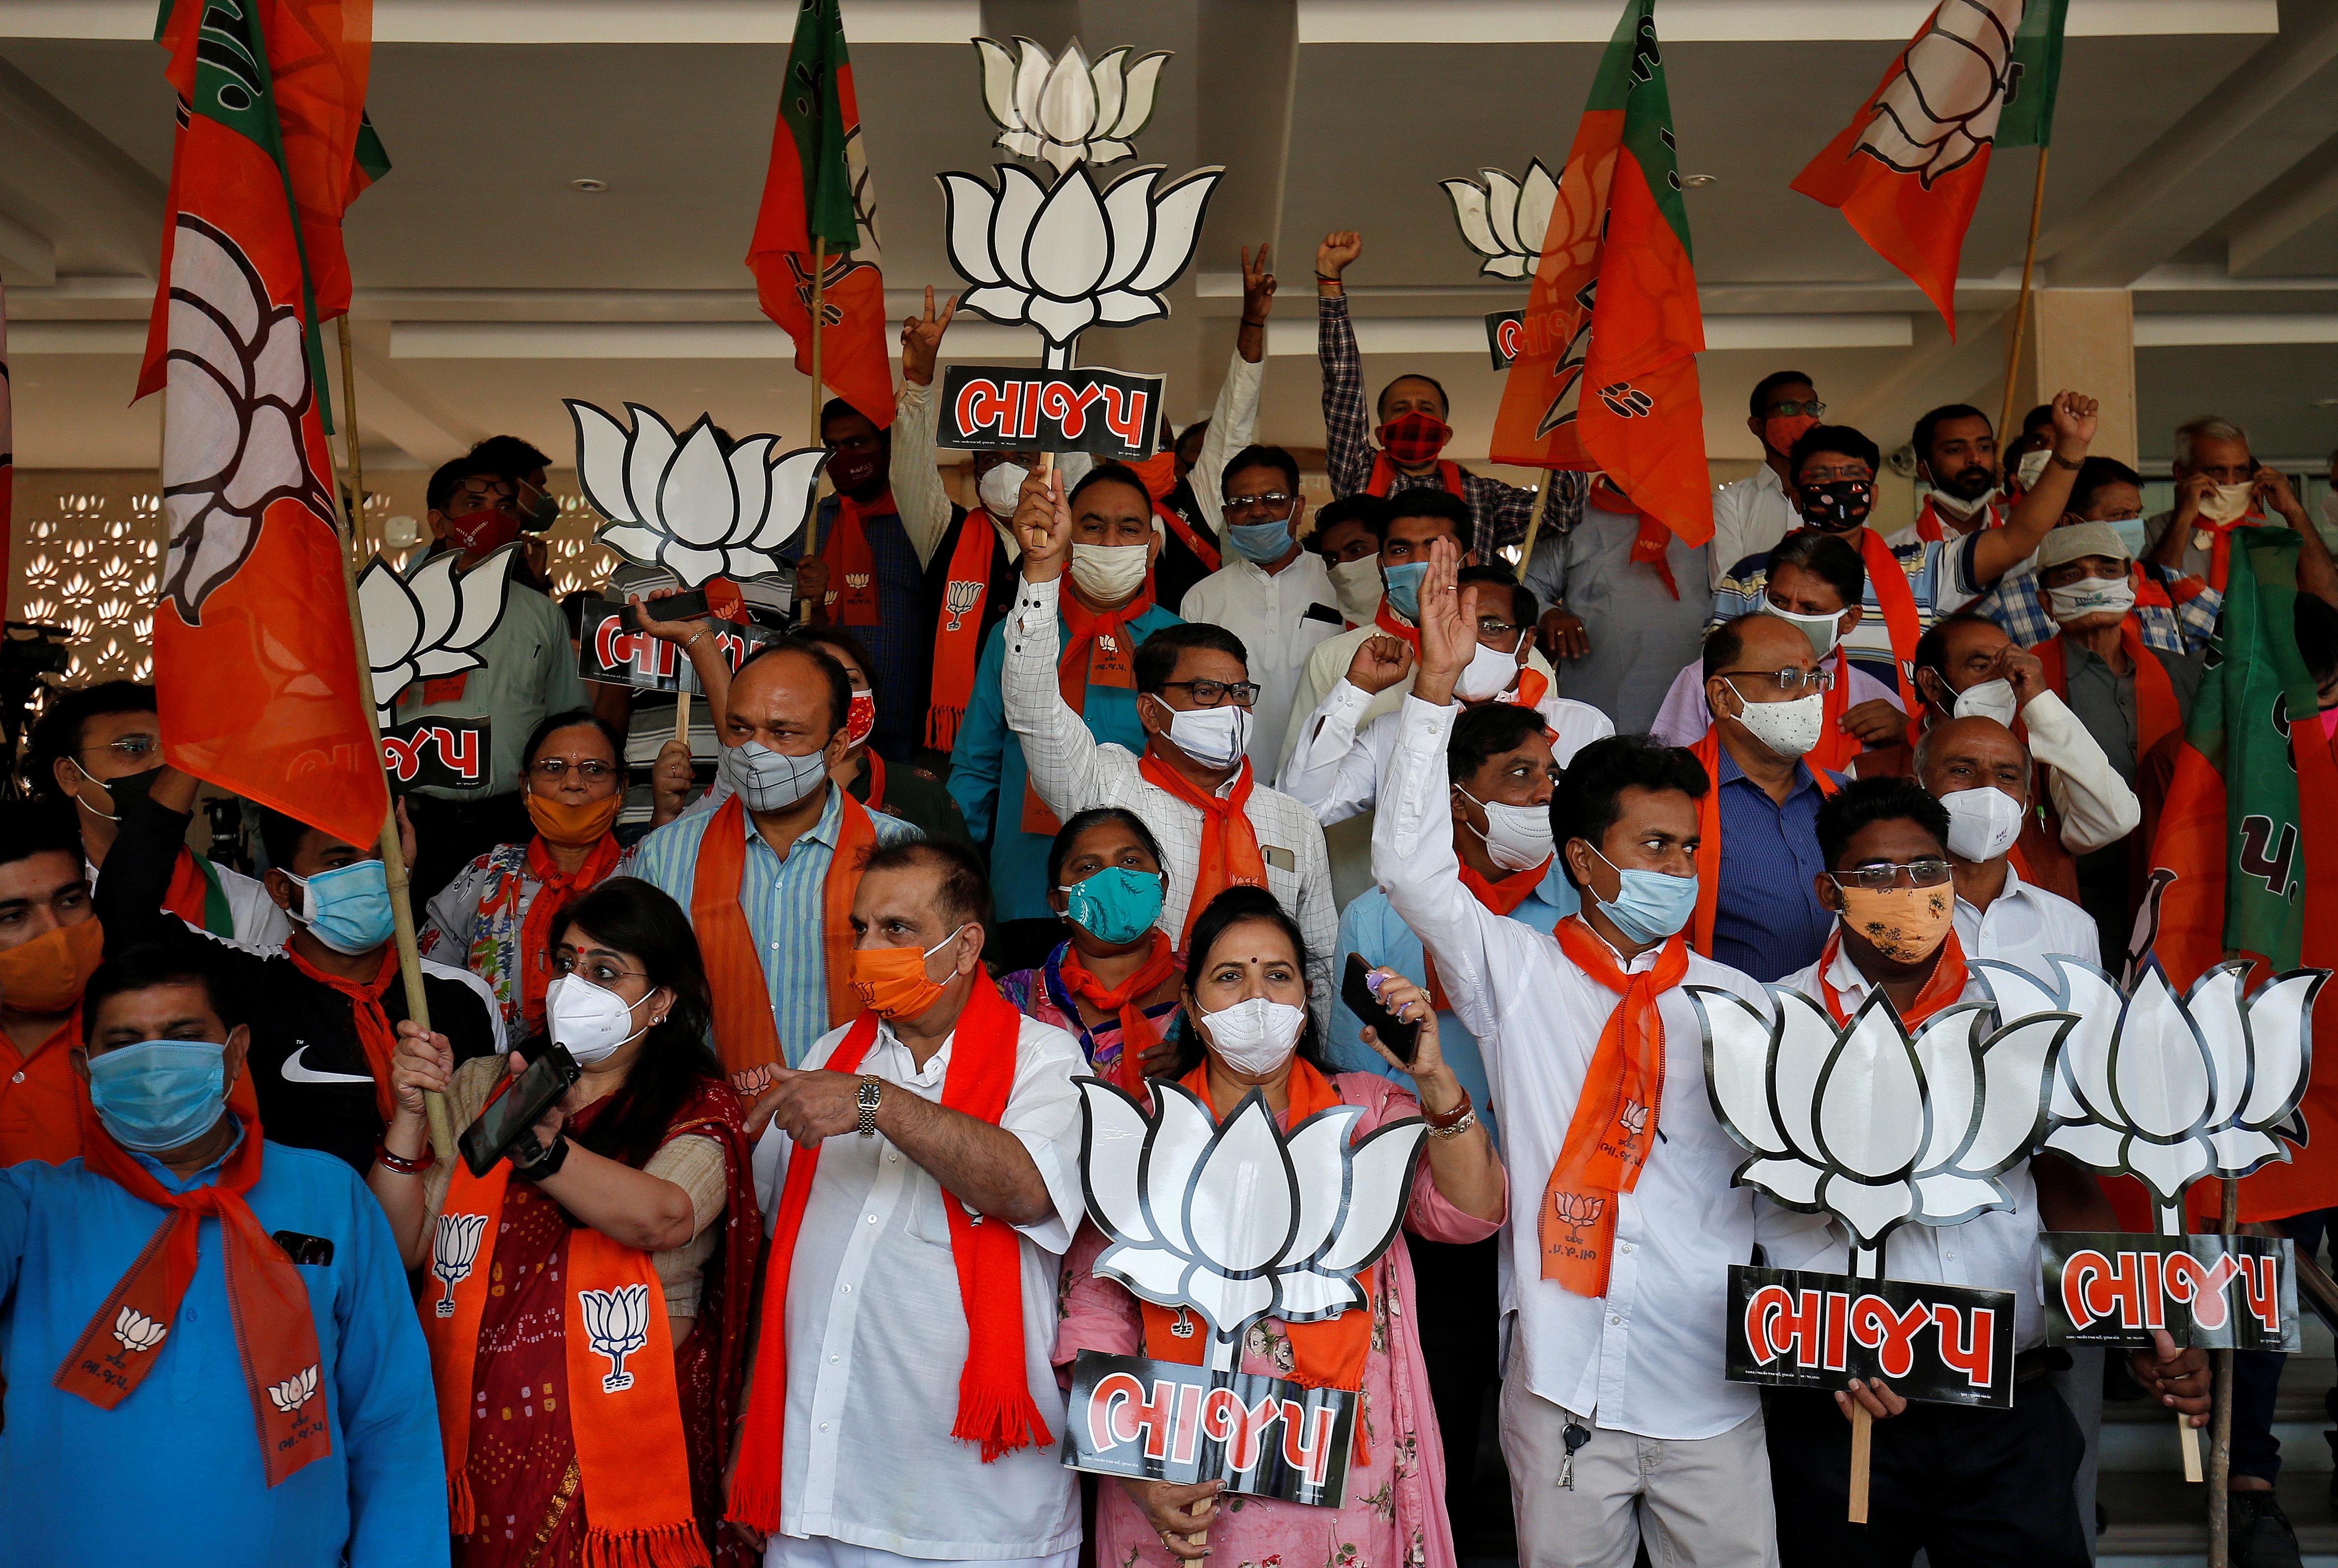 Supporters of India's ruling Bharatiya Janata Party (BJP) hold their party symbols and flags as they gather to celebrate after learning of the initial poll results of the Bihar state assembly election and by-elections in Gujarat, Karnataka and Madhya Pradesh states, in Gandhinagar, India, November 10, 2020.  Photo: Reuters